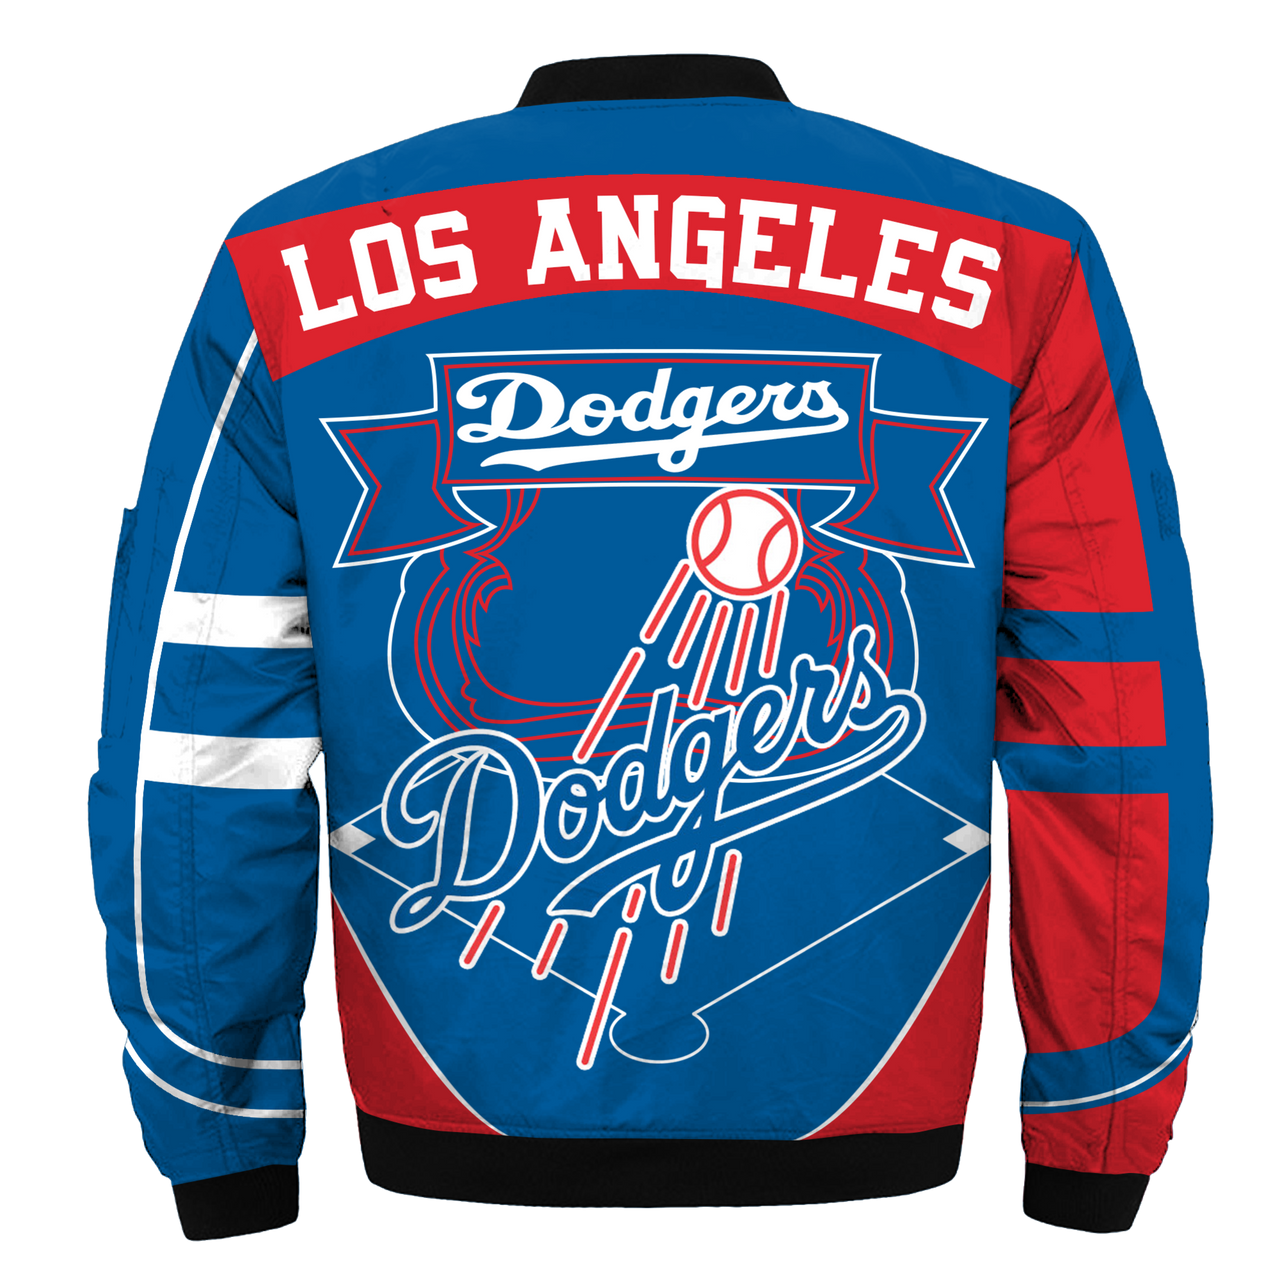 **(OFFICIAL-M.L.B.LOS-ANGELES-DODGERS-TEAM-FLIGHT-JACKETS/NICE-CUSTOM-DETAILED-3D-GRAPHIC-PRINTED/PREMIUM-ALL-OVER-DOUBLE-SIDED-PRINTING/OFFICIAL-DODGERS-TEAM-COLORS & CLASSIC-DODGERS-3D-LOGOS/PREMIUM-ZIPPERED-FRONT-BOMBER/FLIGHT-M.L.B.JACKETS)**